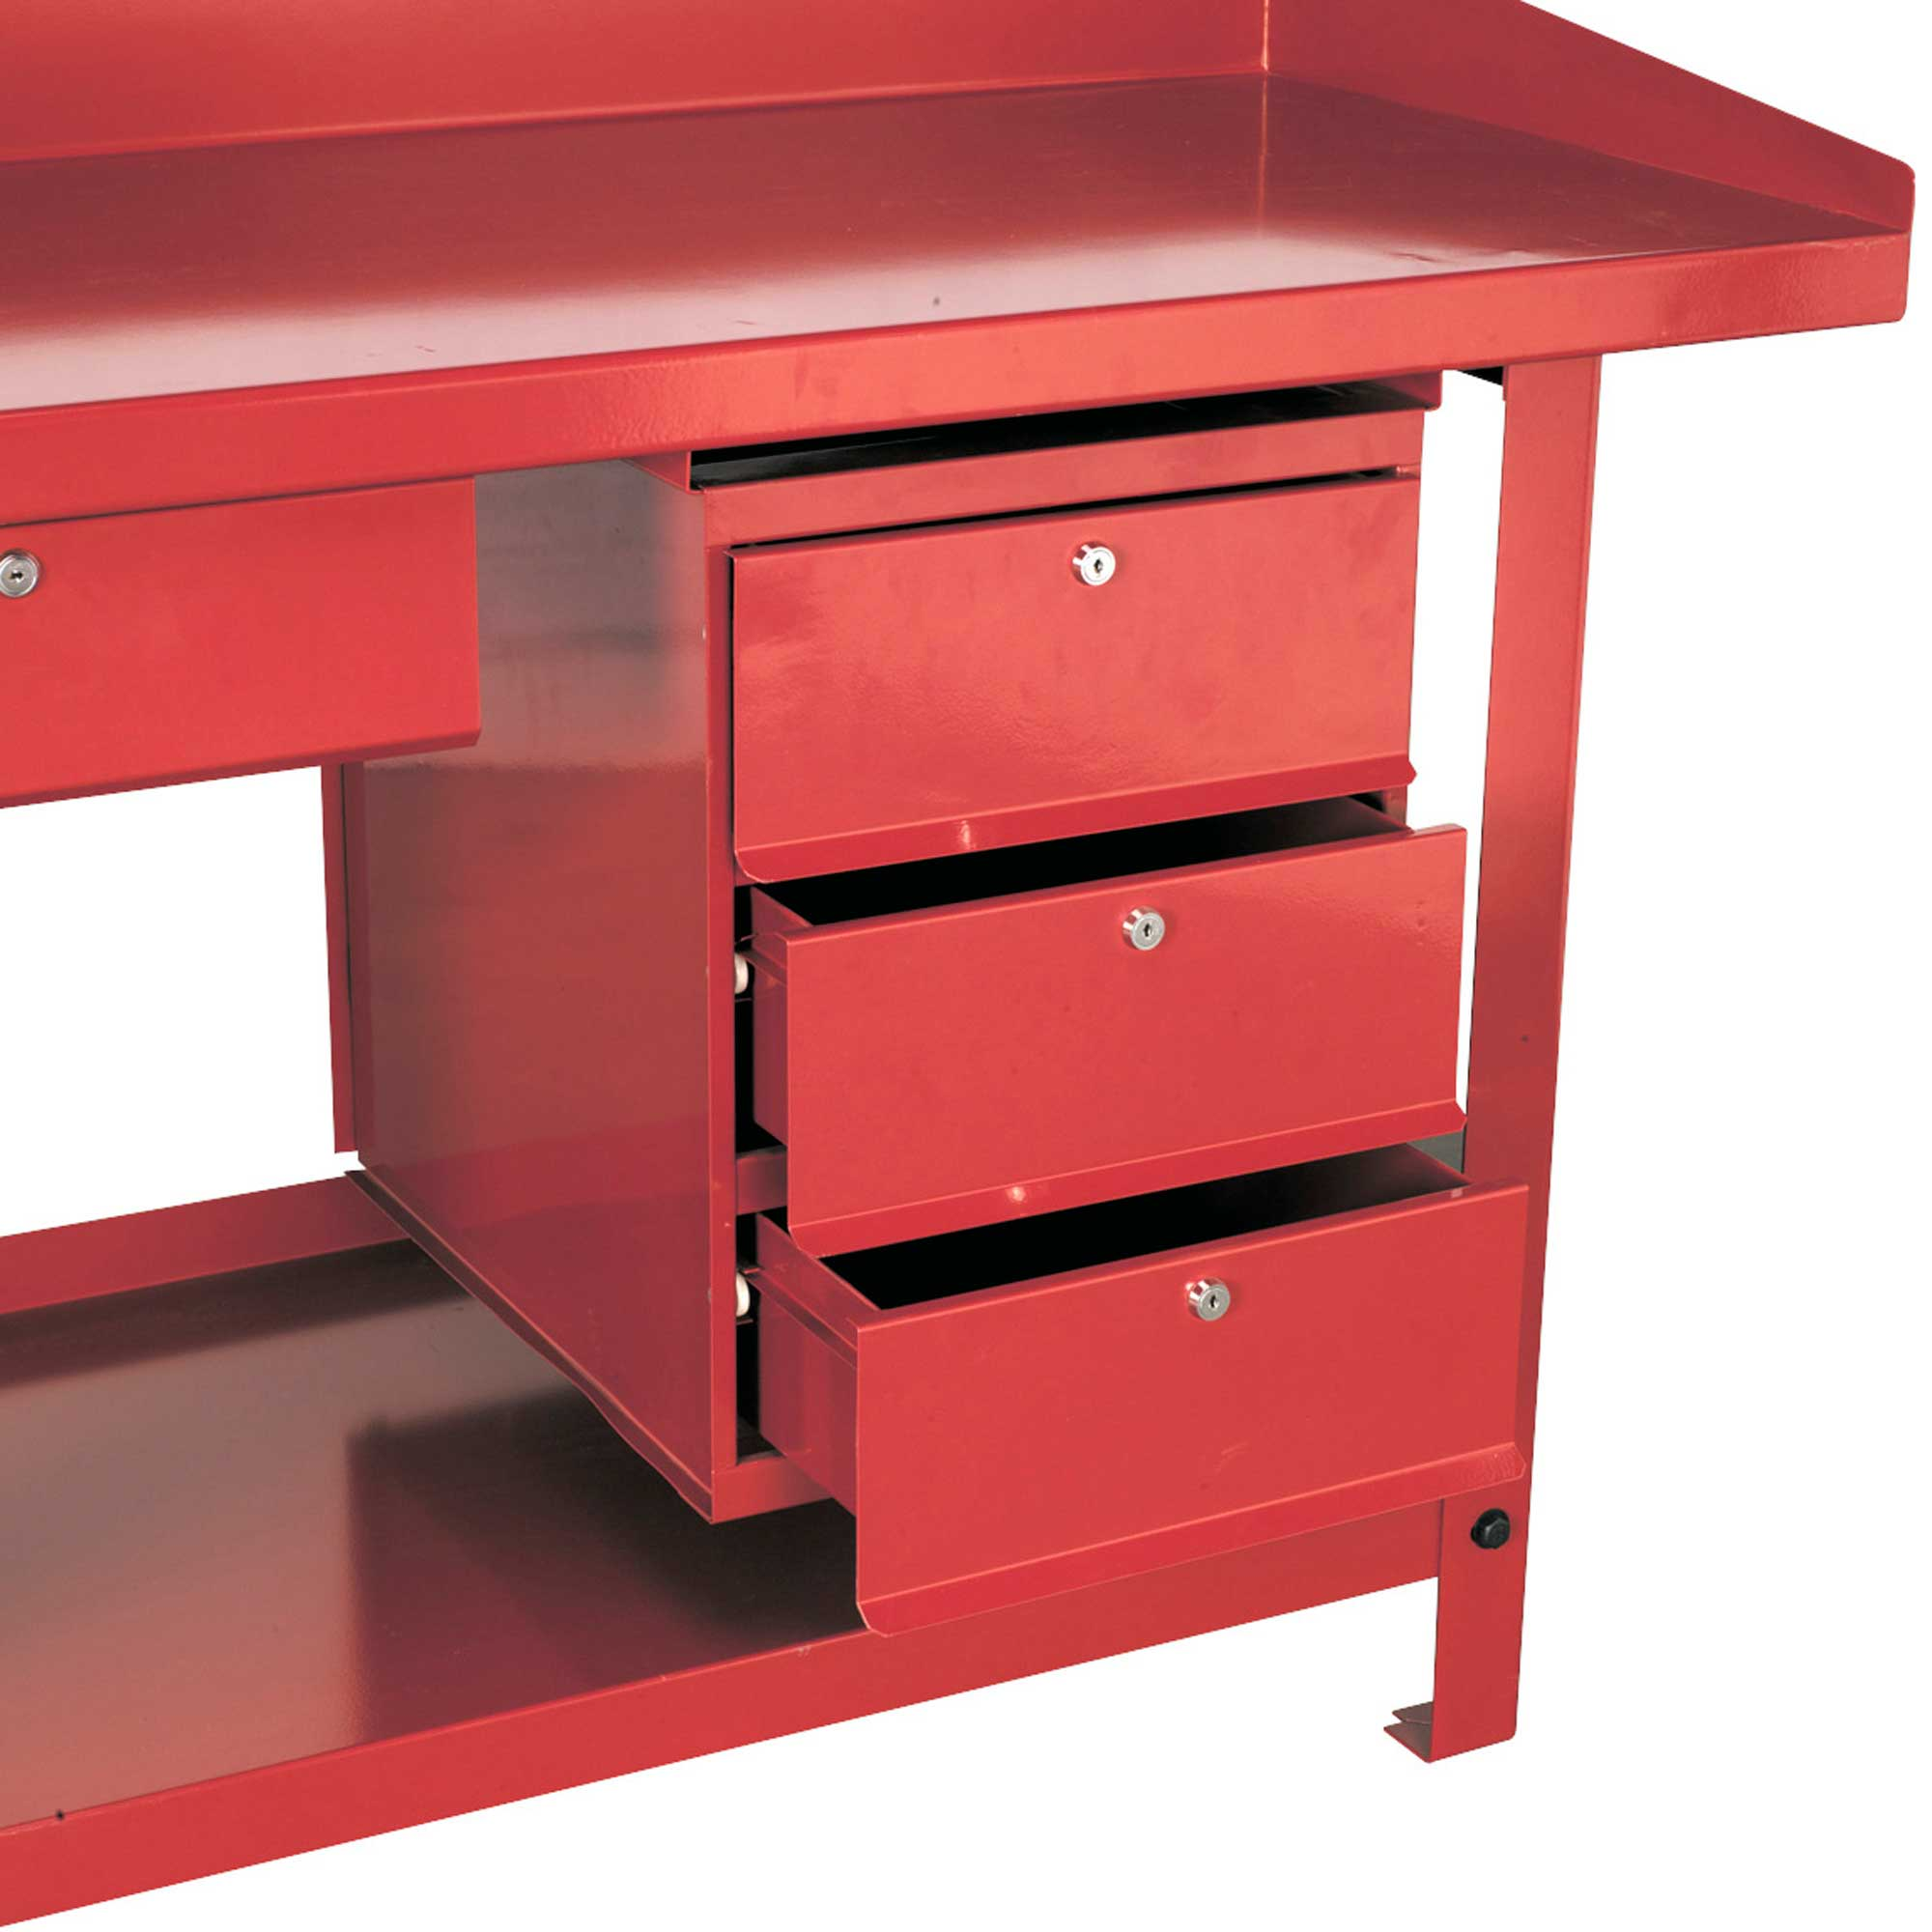 Details About Sealey 3 Storage Drawer Unit For Ap10 And Ap30 Series Garage Work Benches Ap3